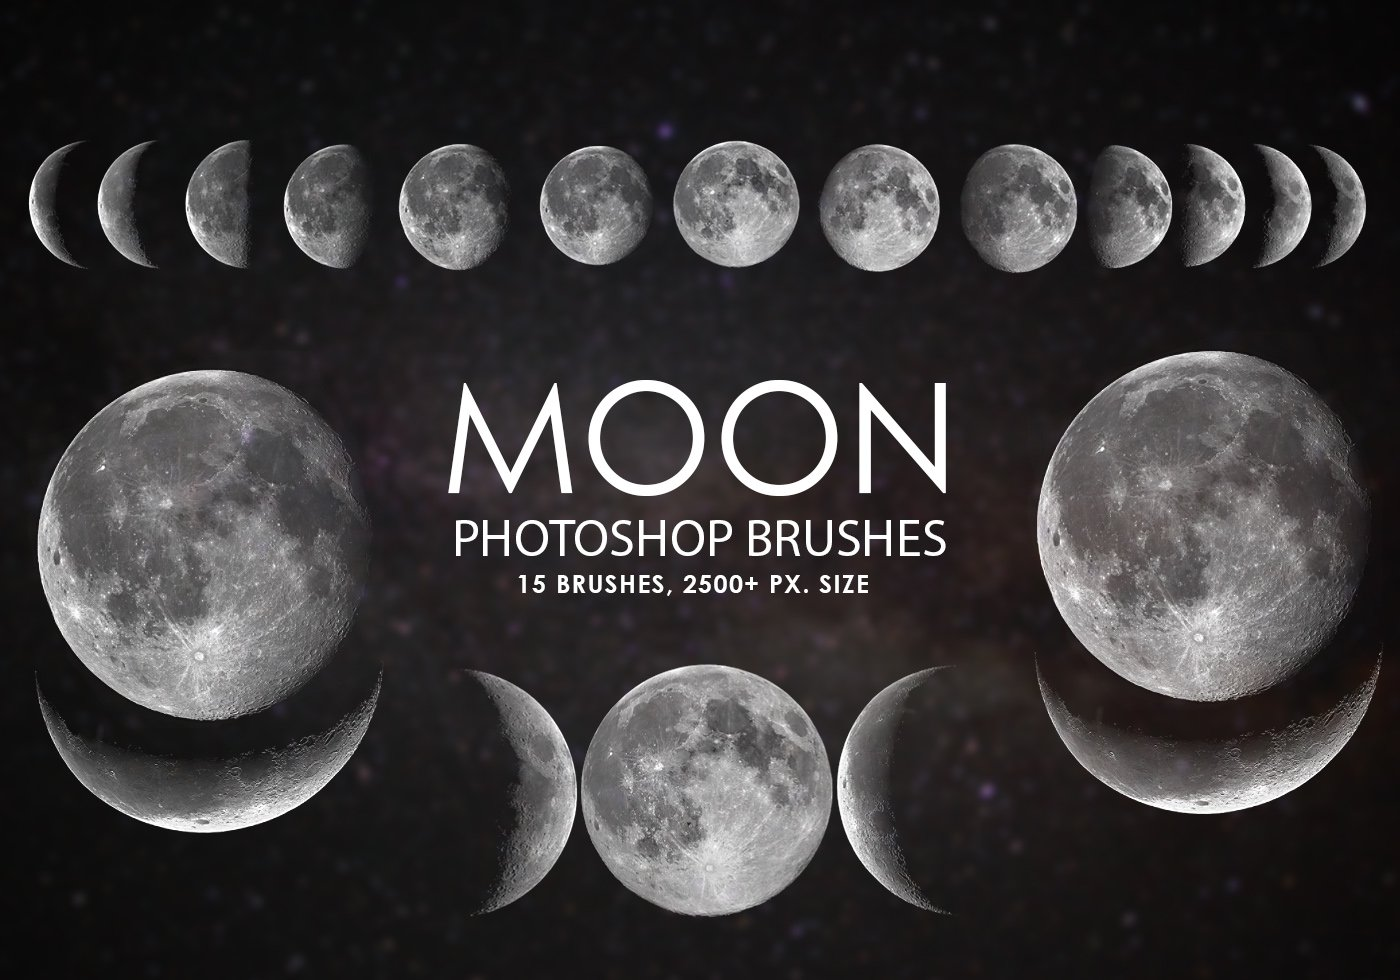 It's just a picture of Gargantuan Photoshop Moon Drawing